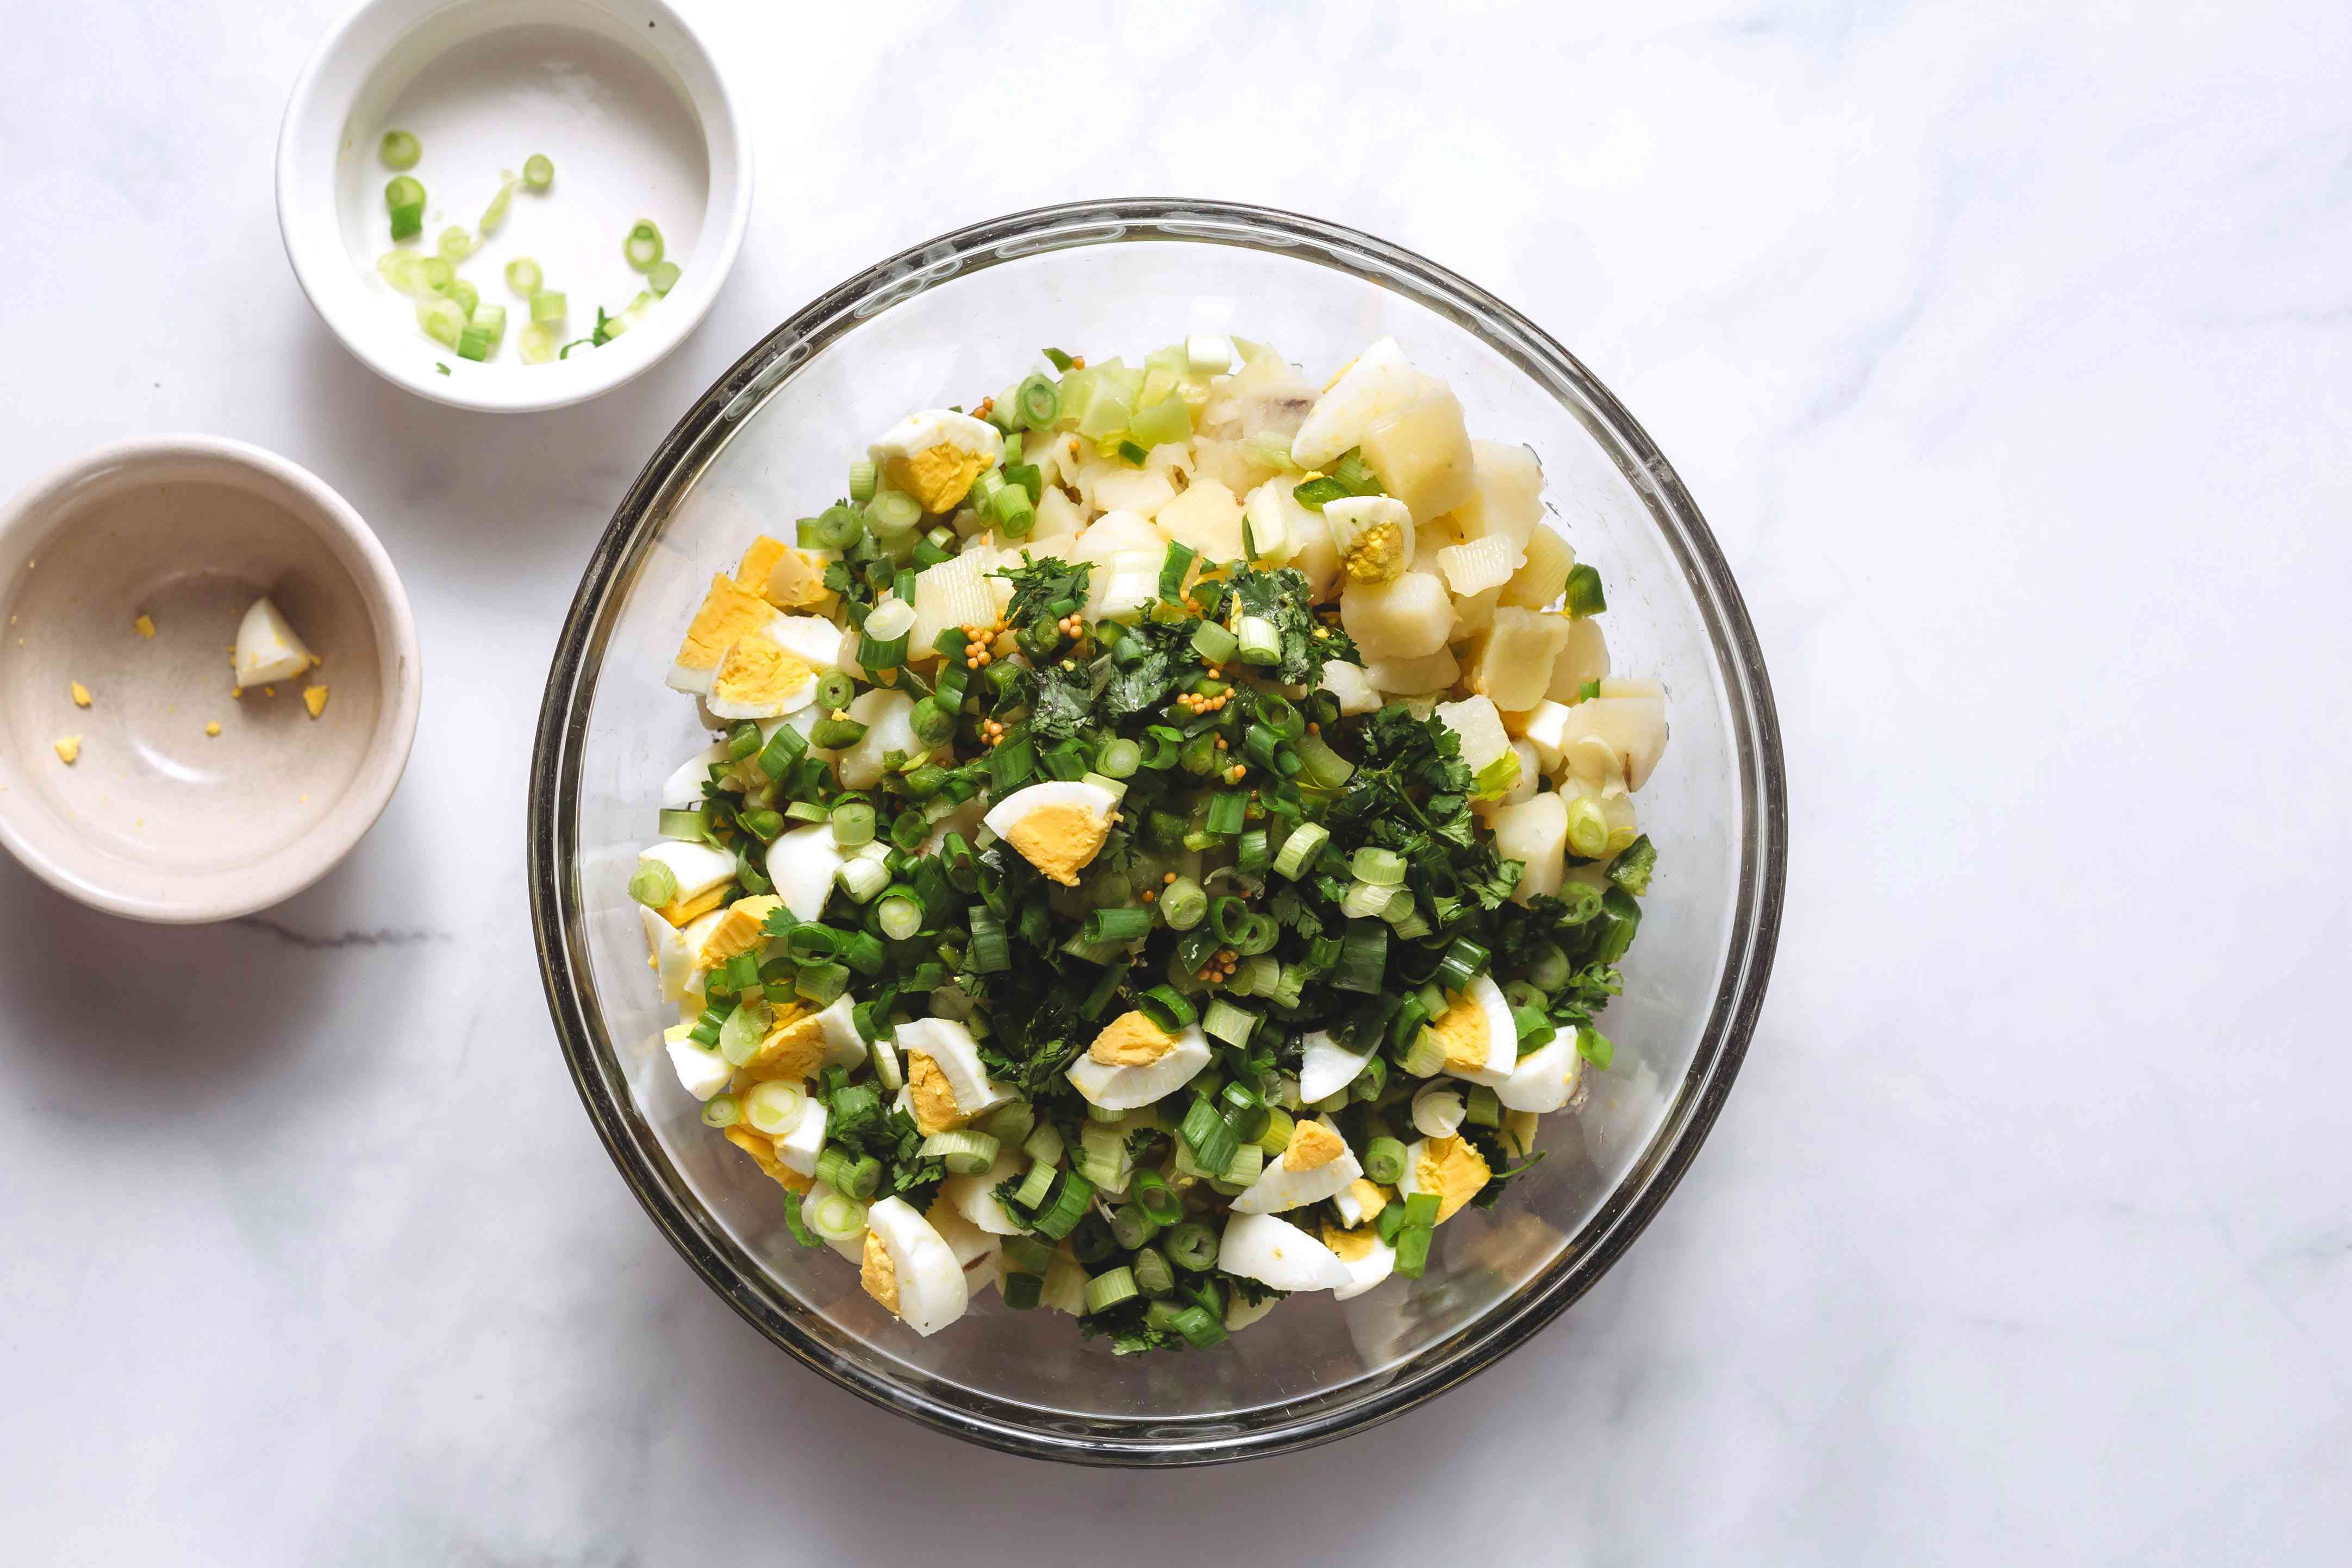 celery, pickled jalapeños, cilantro, egg, and green onions in a bowl